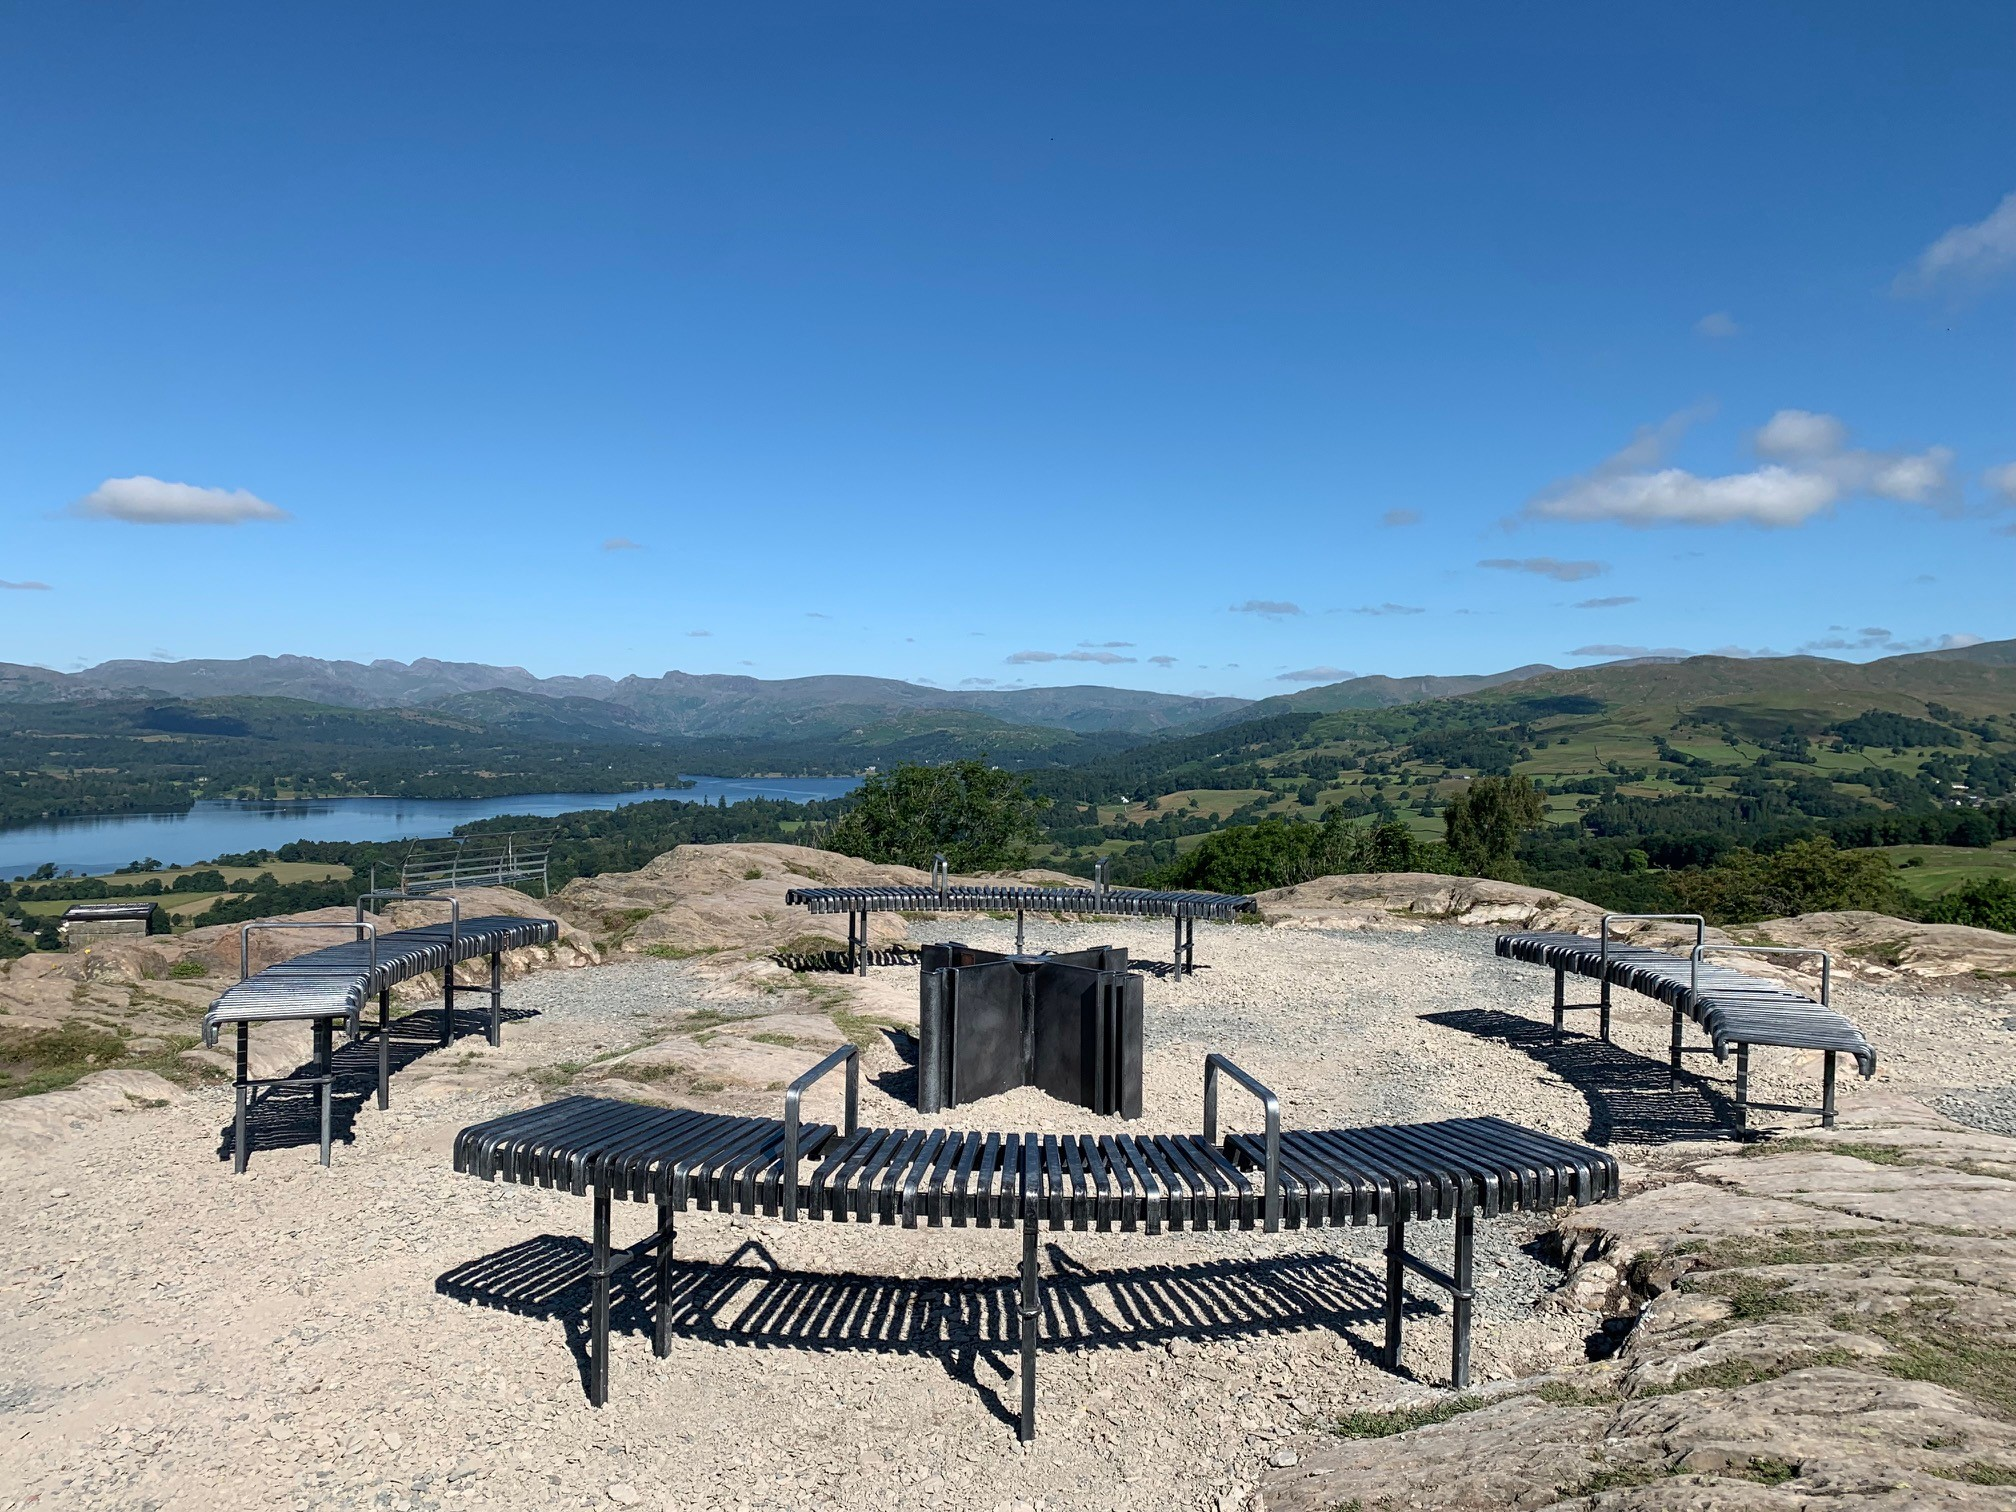 View from the summit of Orrest Head fell over Lake Windermere.